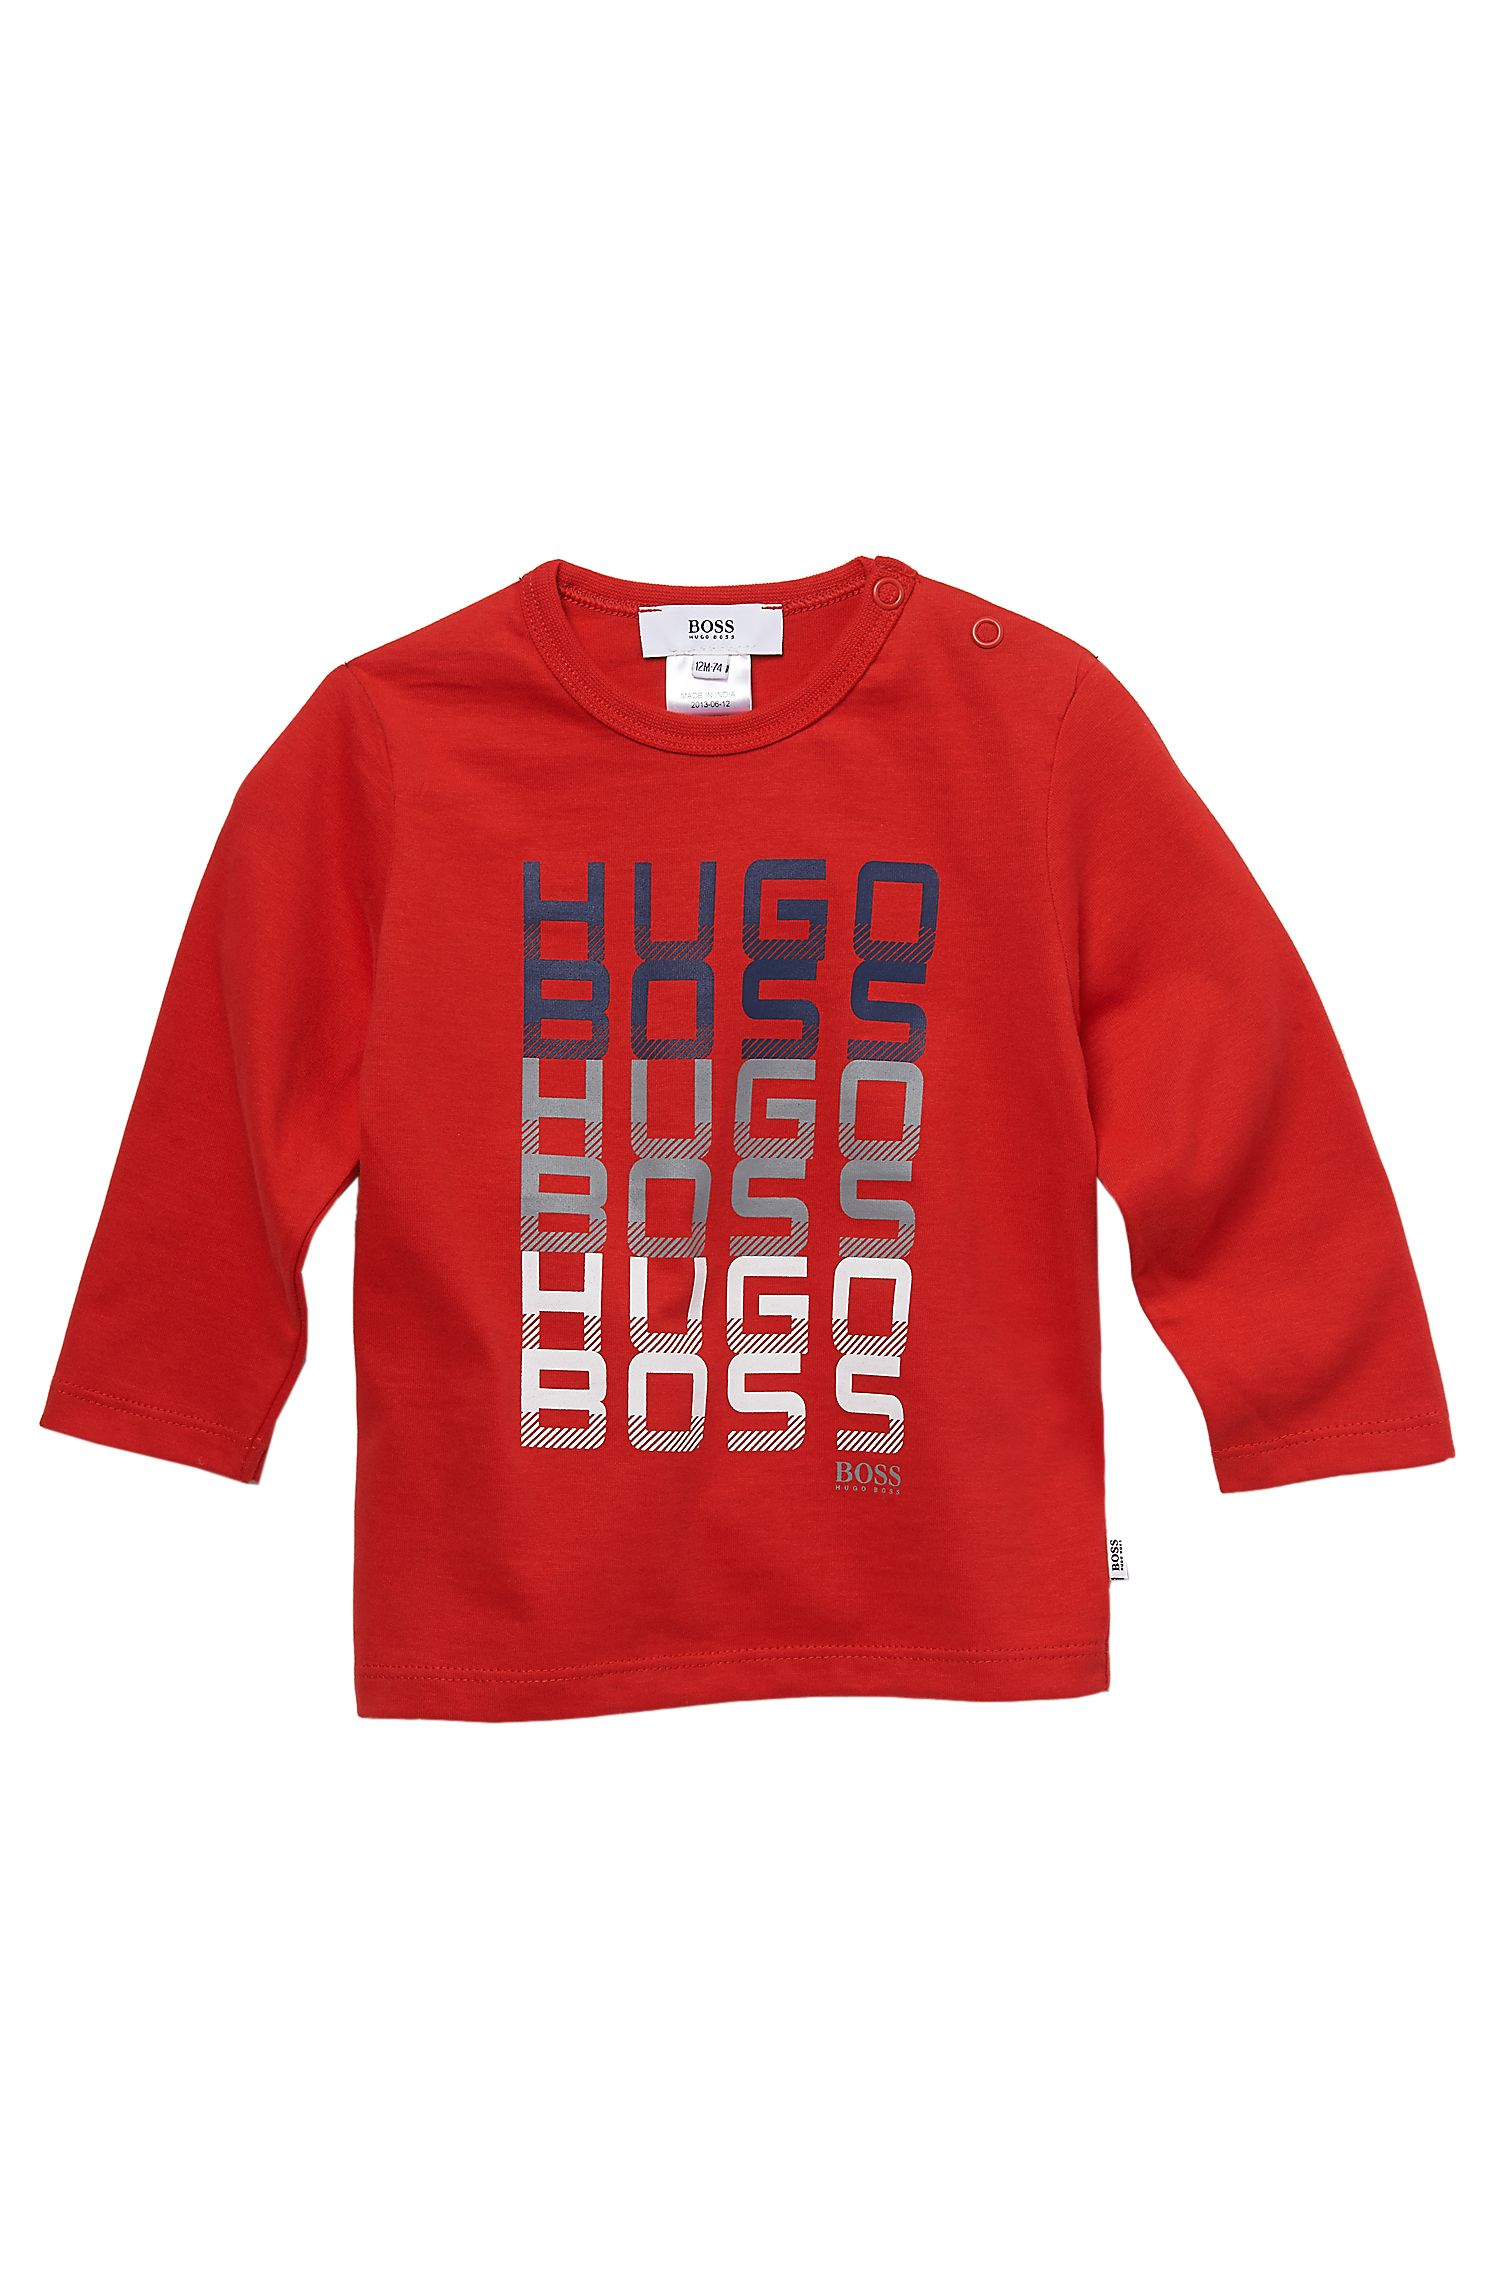 'J05267' | Toddler Long-Sleeved Cotton Print Crewneck T-Shirt